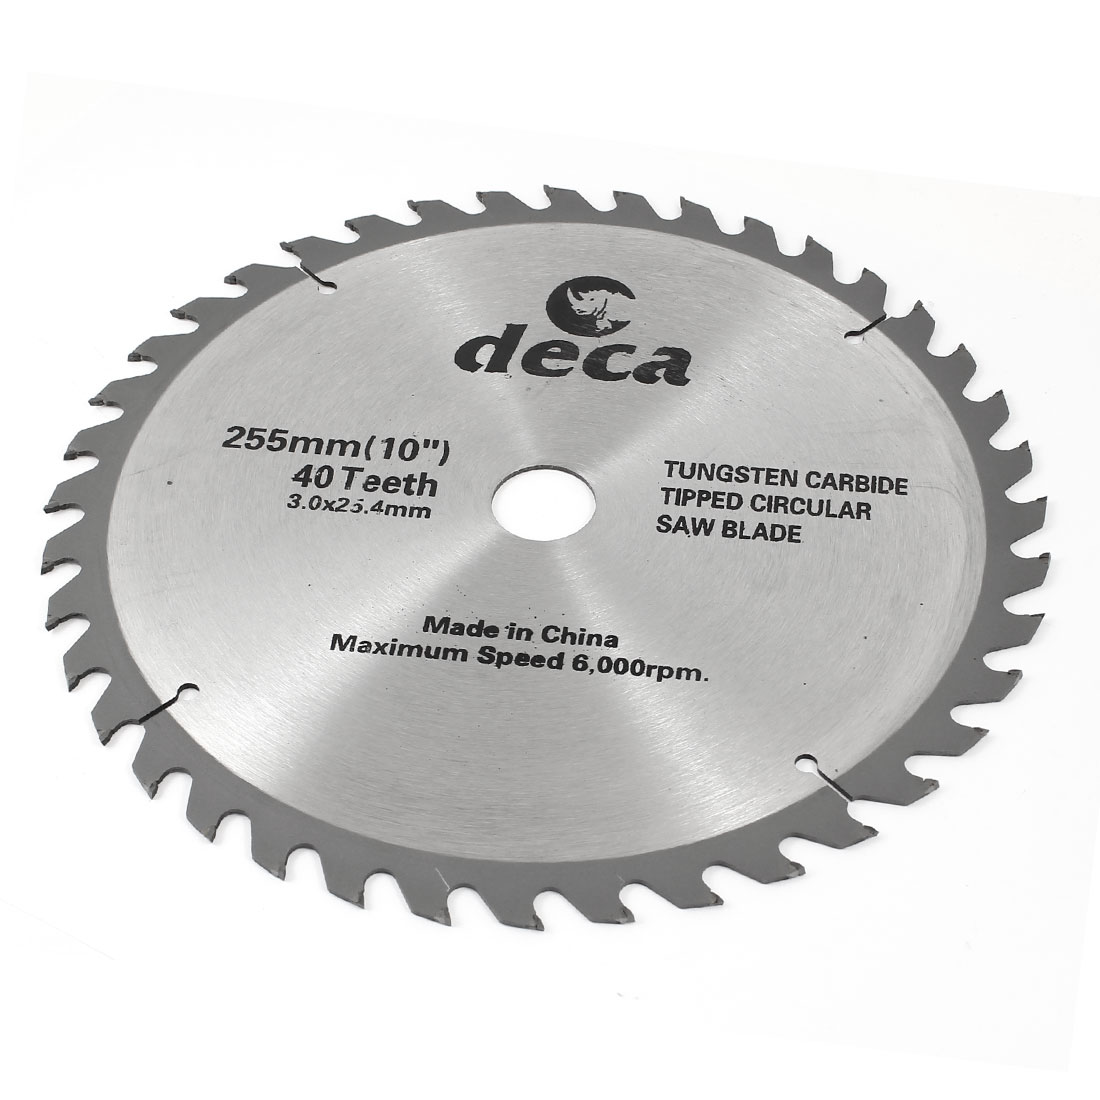 6000RPM Speed 40T 255mm Diameter Saw Cutter Silver Tone for Wood Cutting